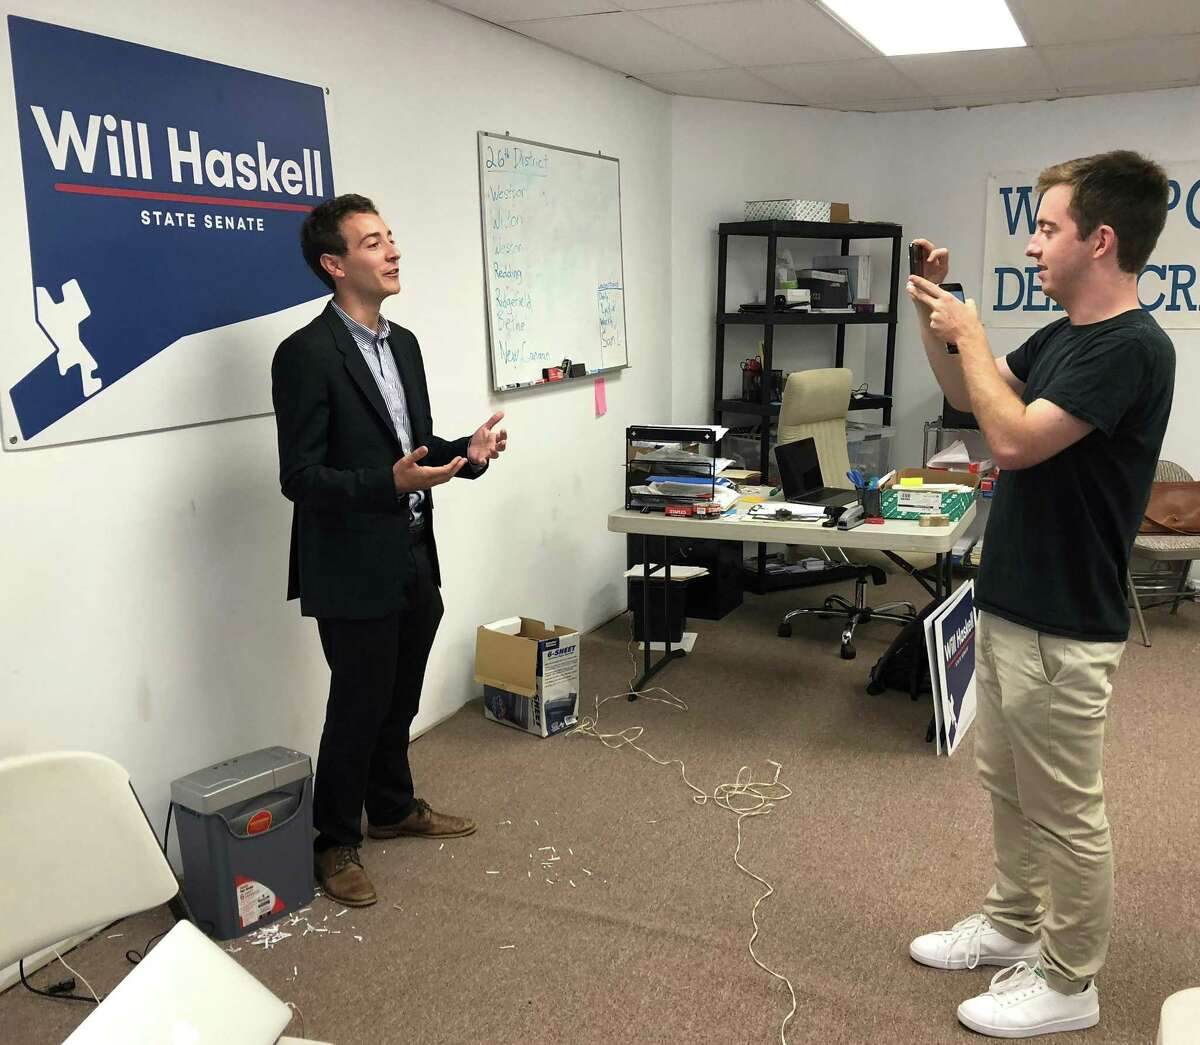 Will Haskell, the Democratic candidate for the 26th state senate district, films a video in the Democratic campaign office in Westport with his campaign manager, Jack Lynch, on July 31.